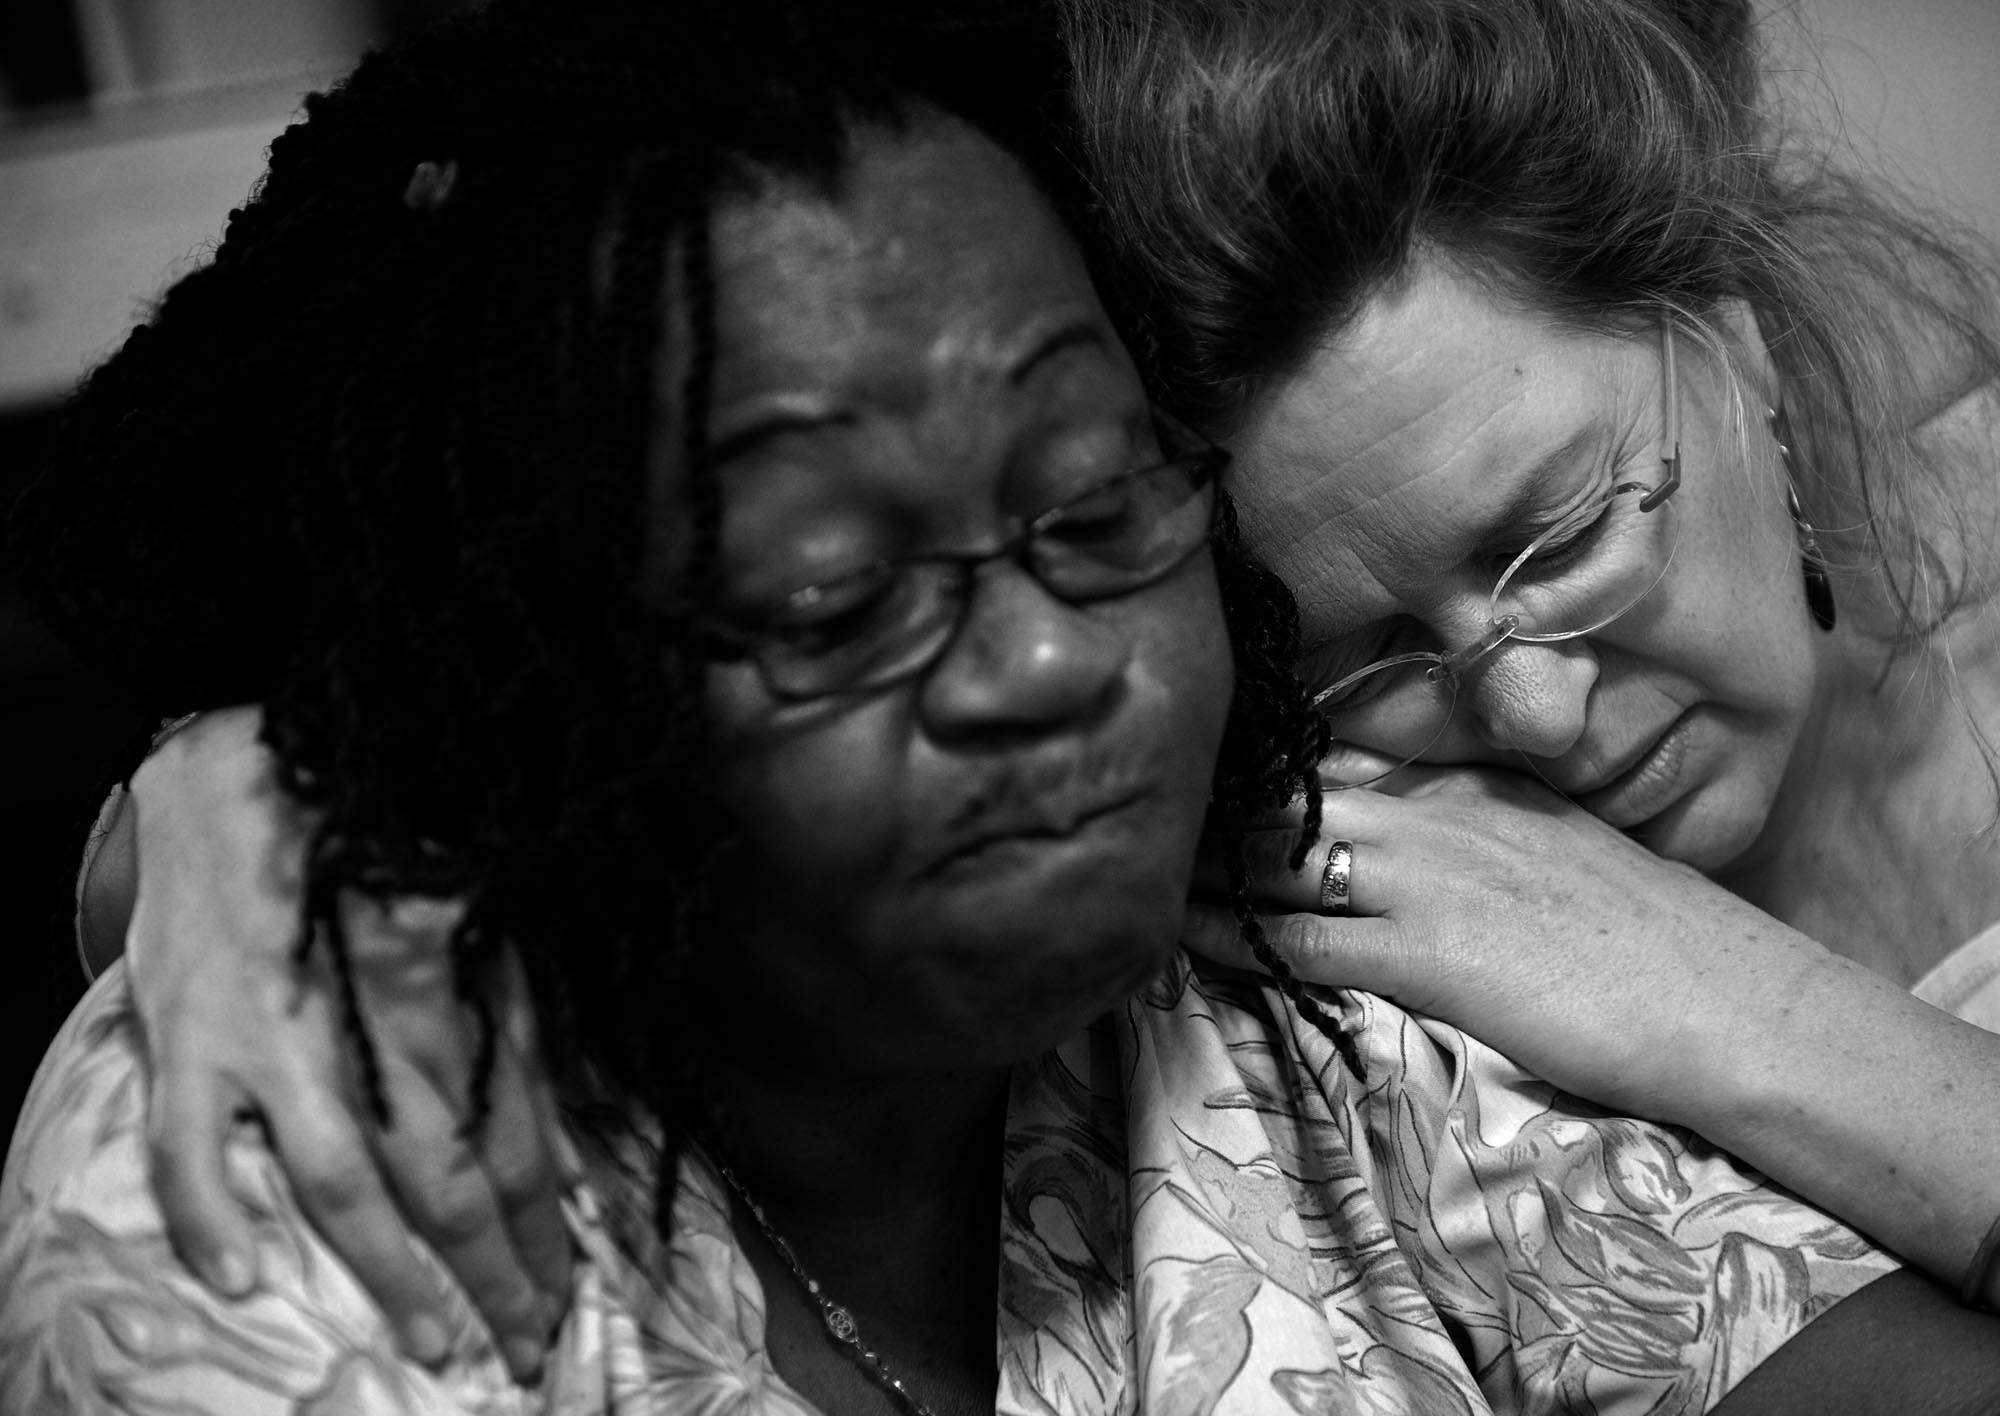 Blossom Williams, certified nursing assistant, left, and Patricia Wudel , executive director of Joseph's House, talk about Rob Wylie. Even as his own health declined, the two note, Wylie remained protective of the women of Joseph's House.